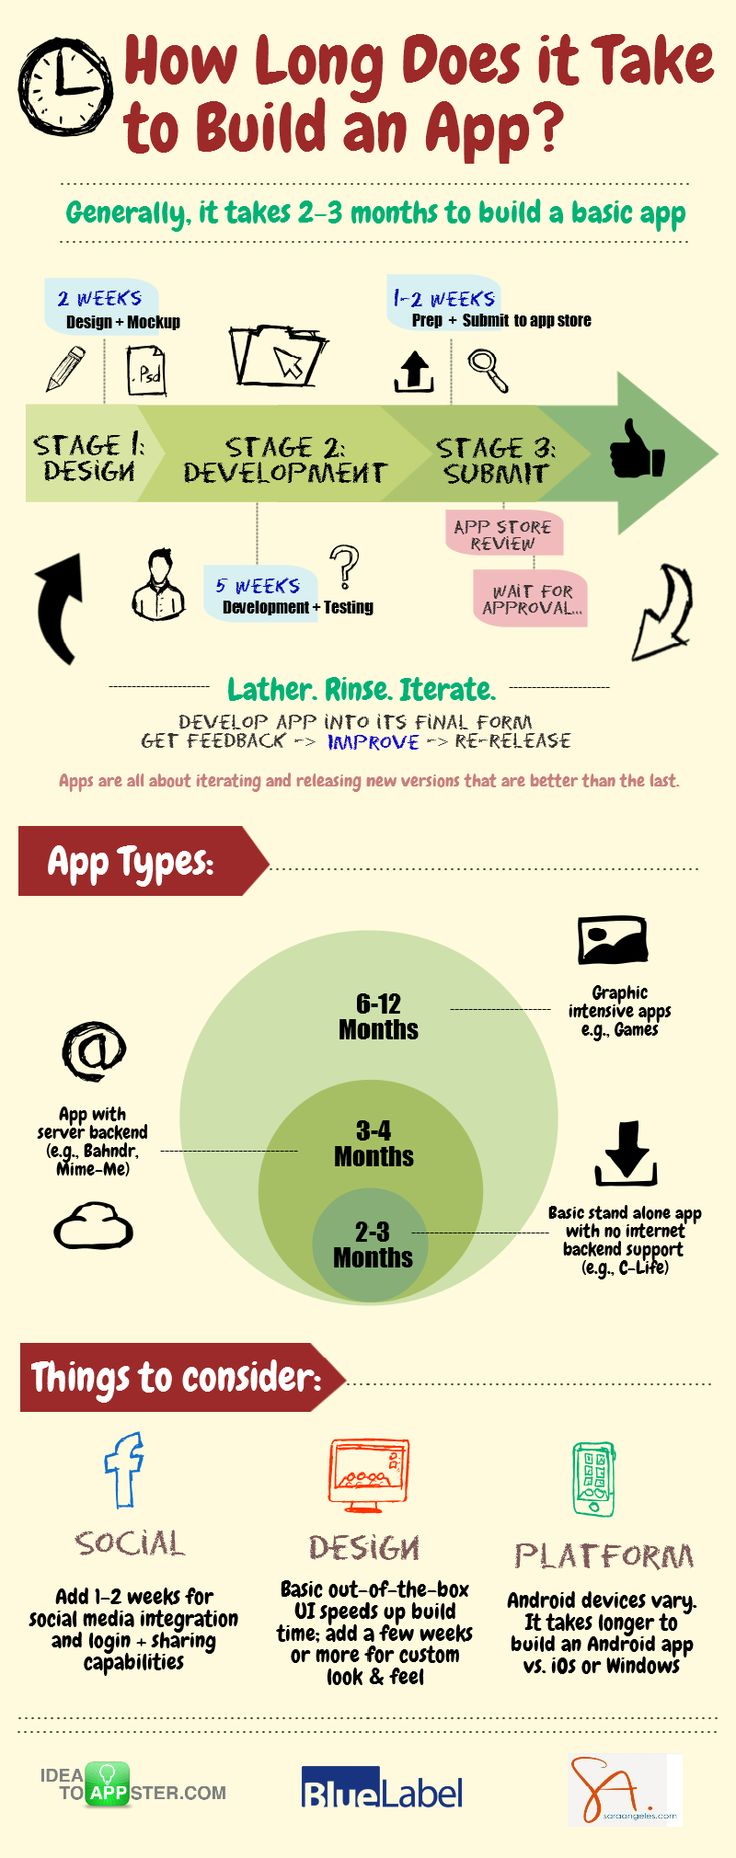 How Long Does it Take to Build an App?: An Infographic - Idea to Appster    We can build an app in a week at WSTechCamp!